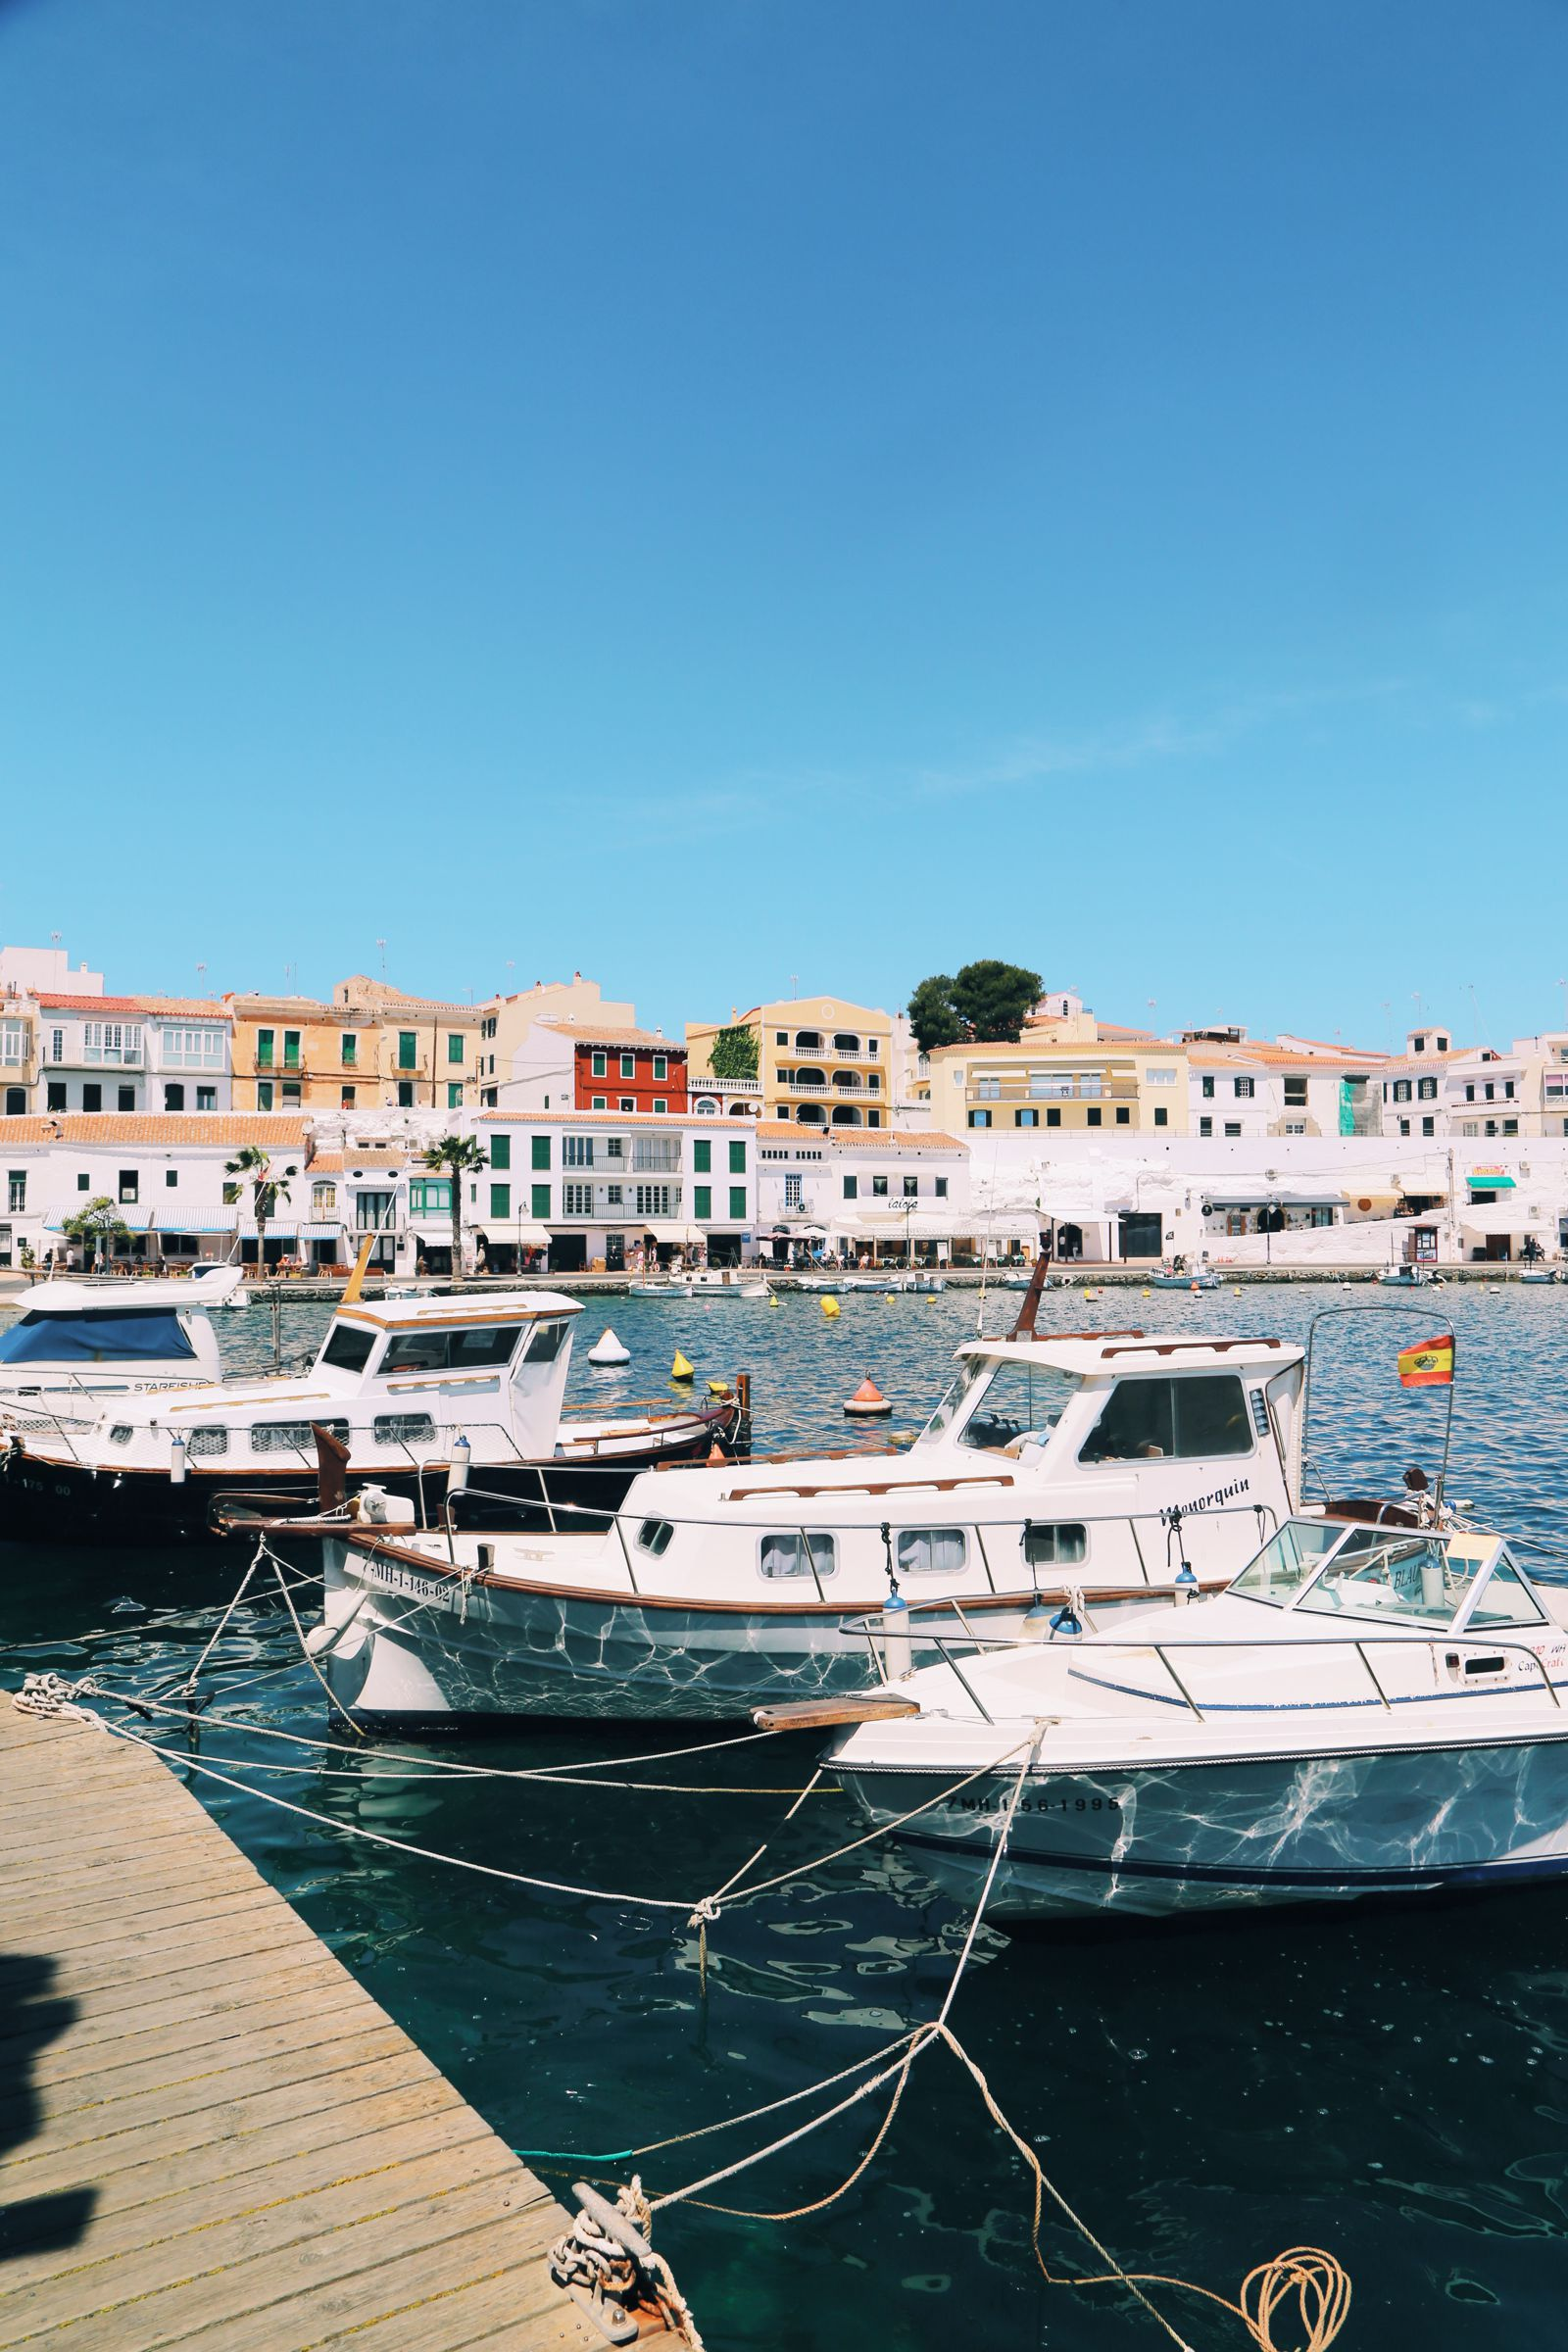 Ever Wondered What The Spanish Island Of Menorca Looks Like? Well Here It is... (18)